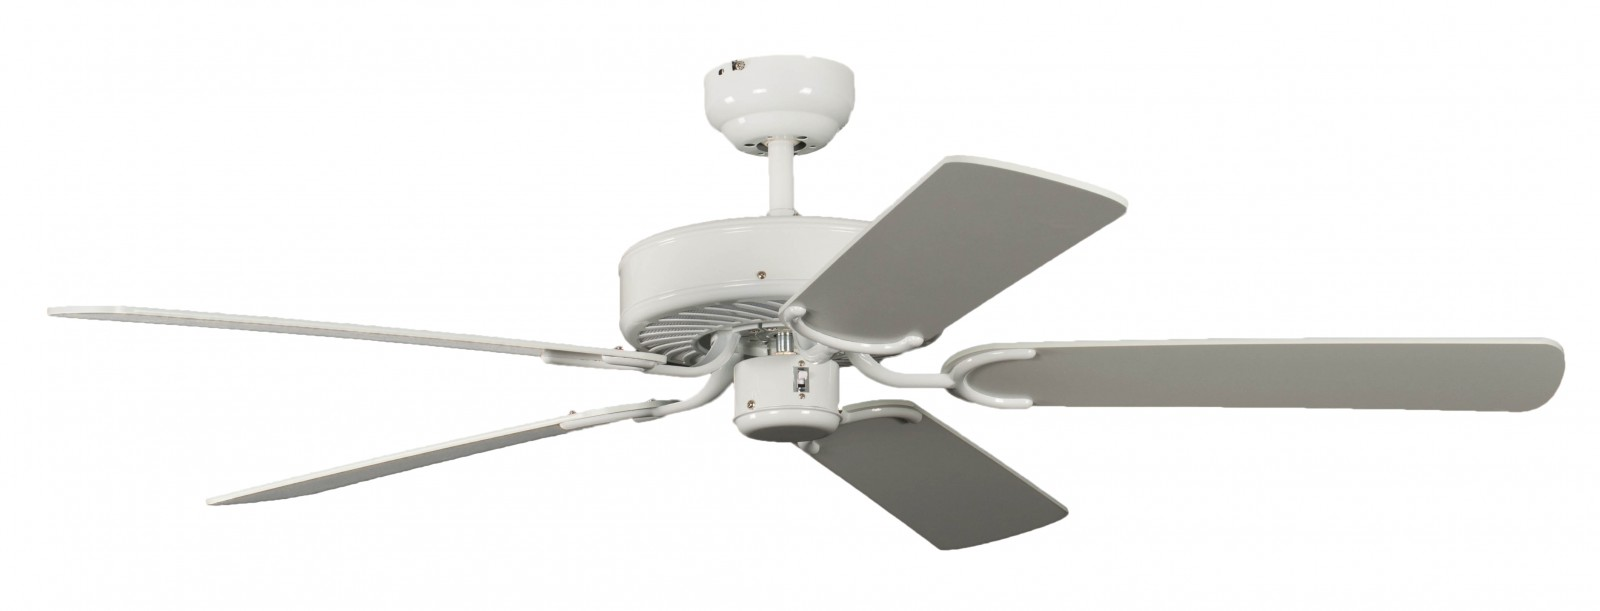 Ceiling Fan Potkuri white, selectable blade colour Ceiling fans for domestic and professional ...